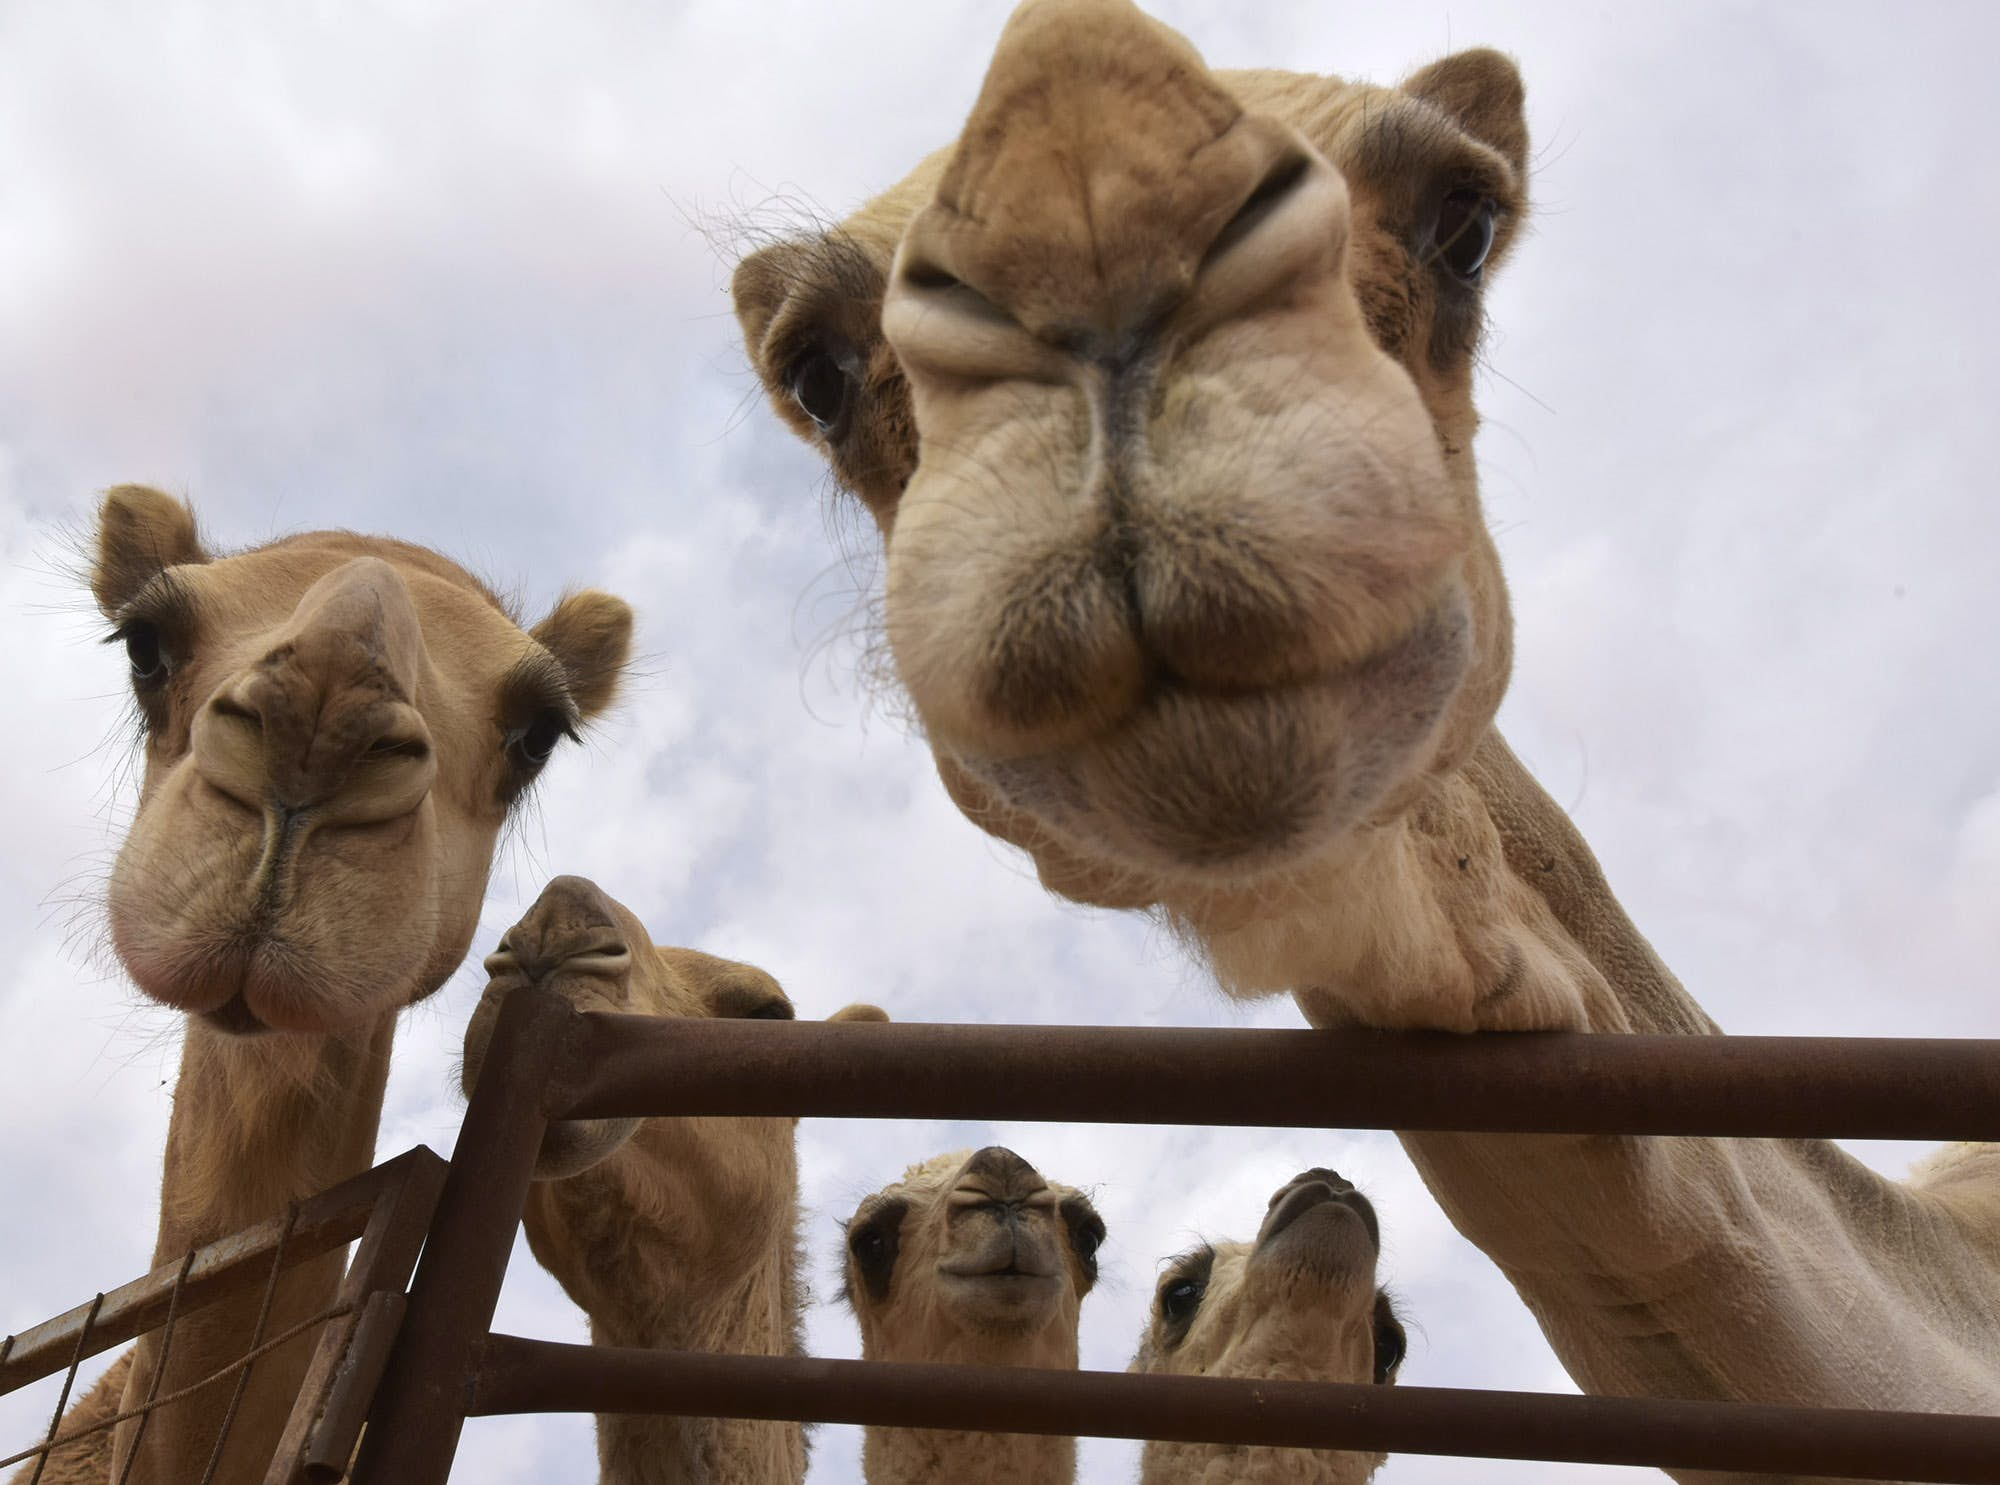 Travelodge Bristol – The straw that broke this camel's back – Let's Talk About That